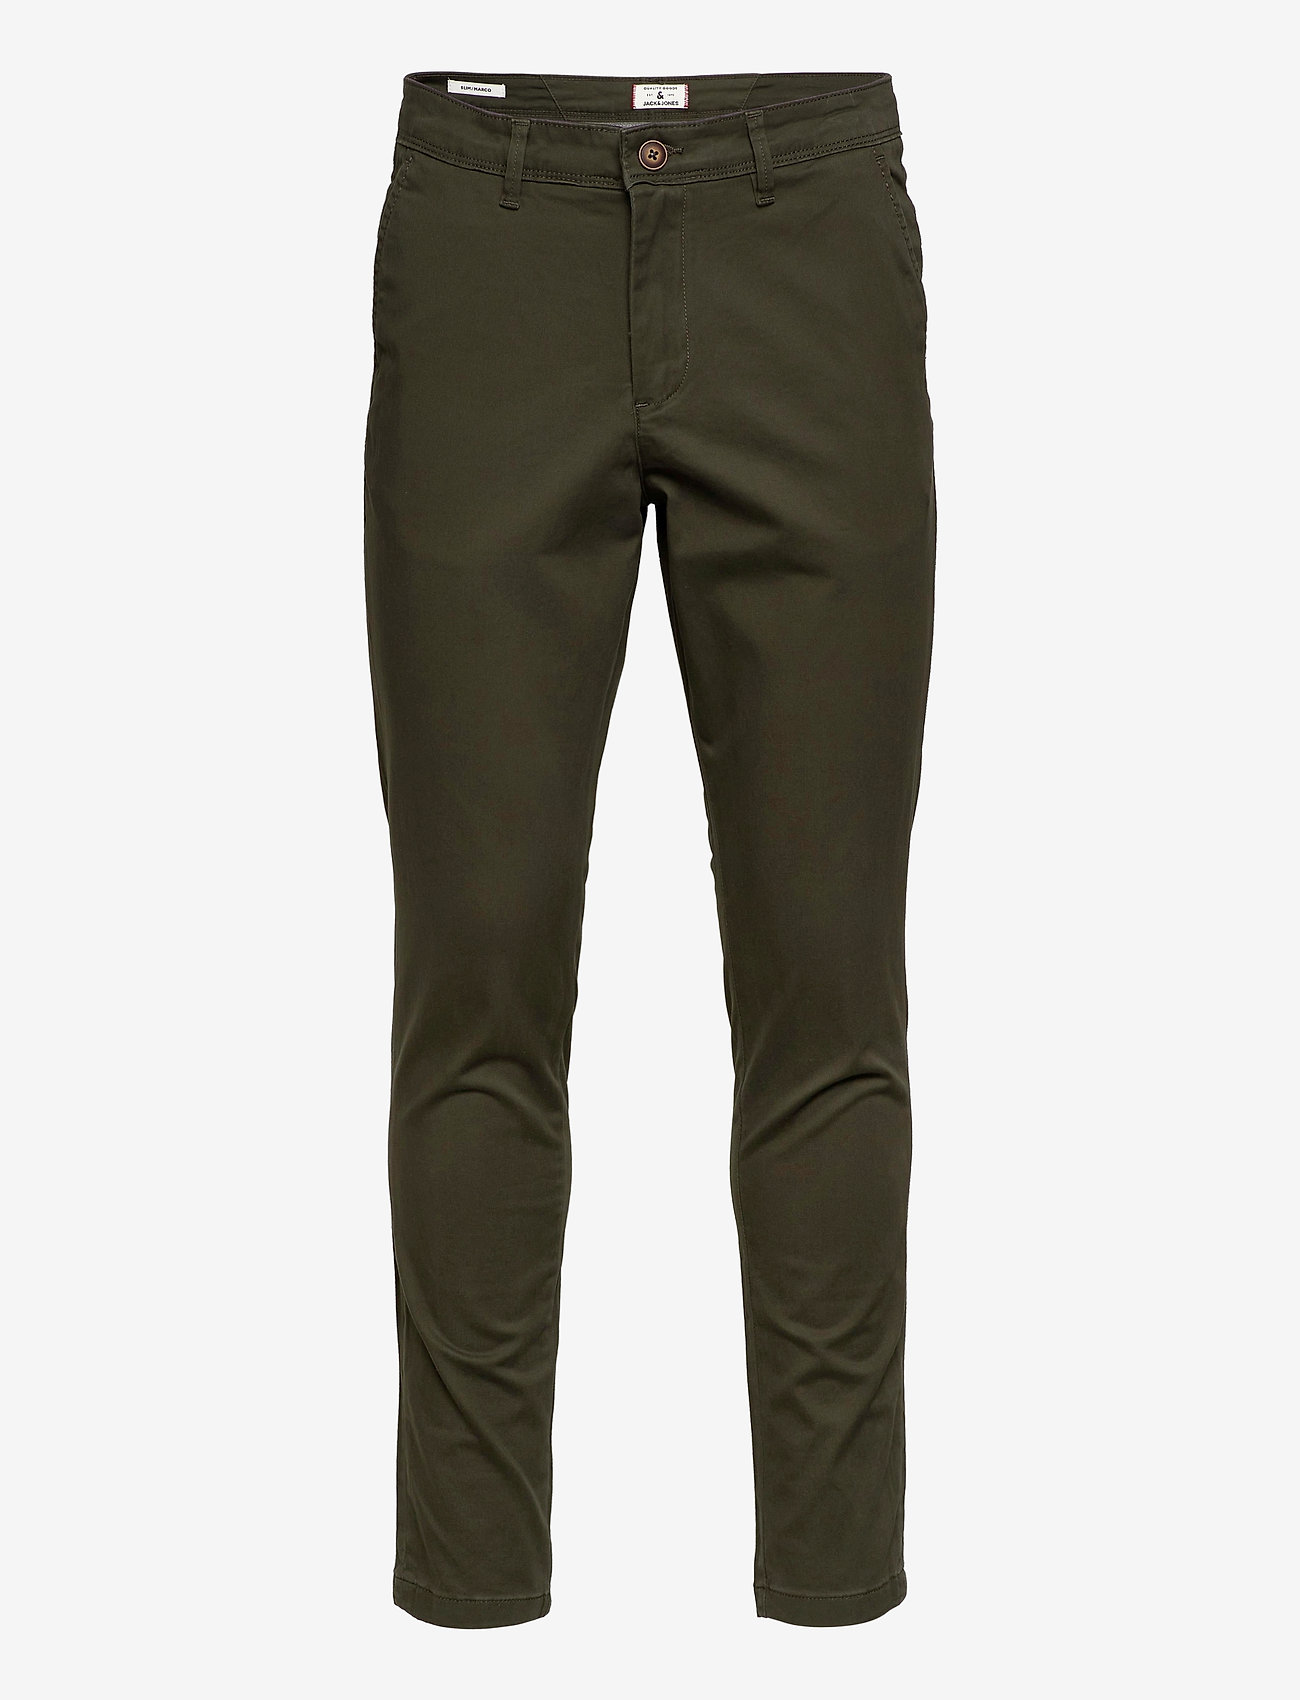 Jack & Jones - JJIMARCO JJBOWIE SA FOREST NIGHT NOOS - chinot - forest night - 0